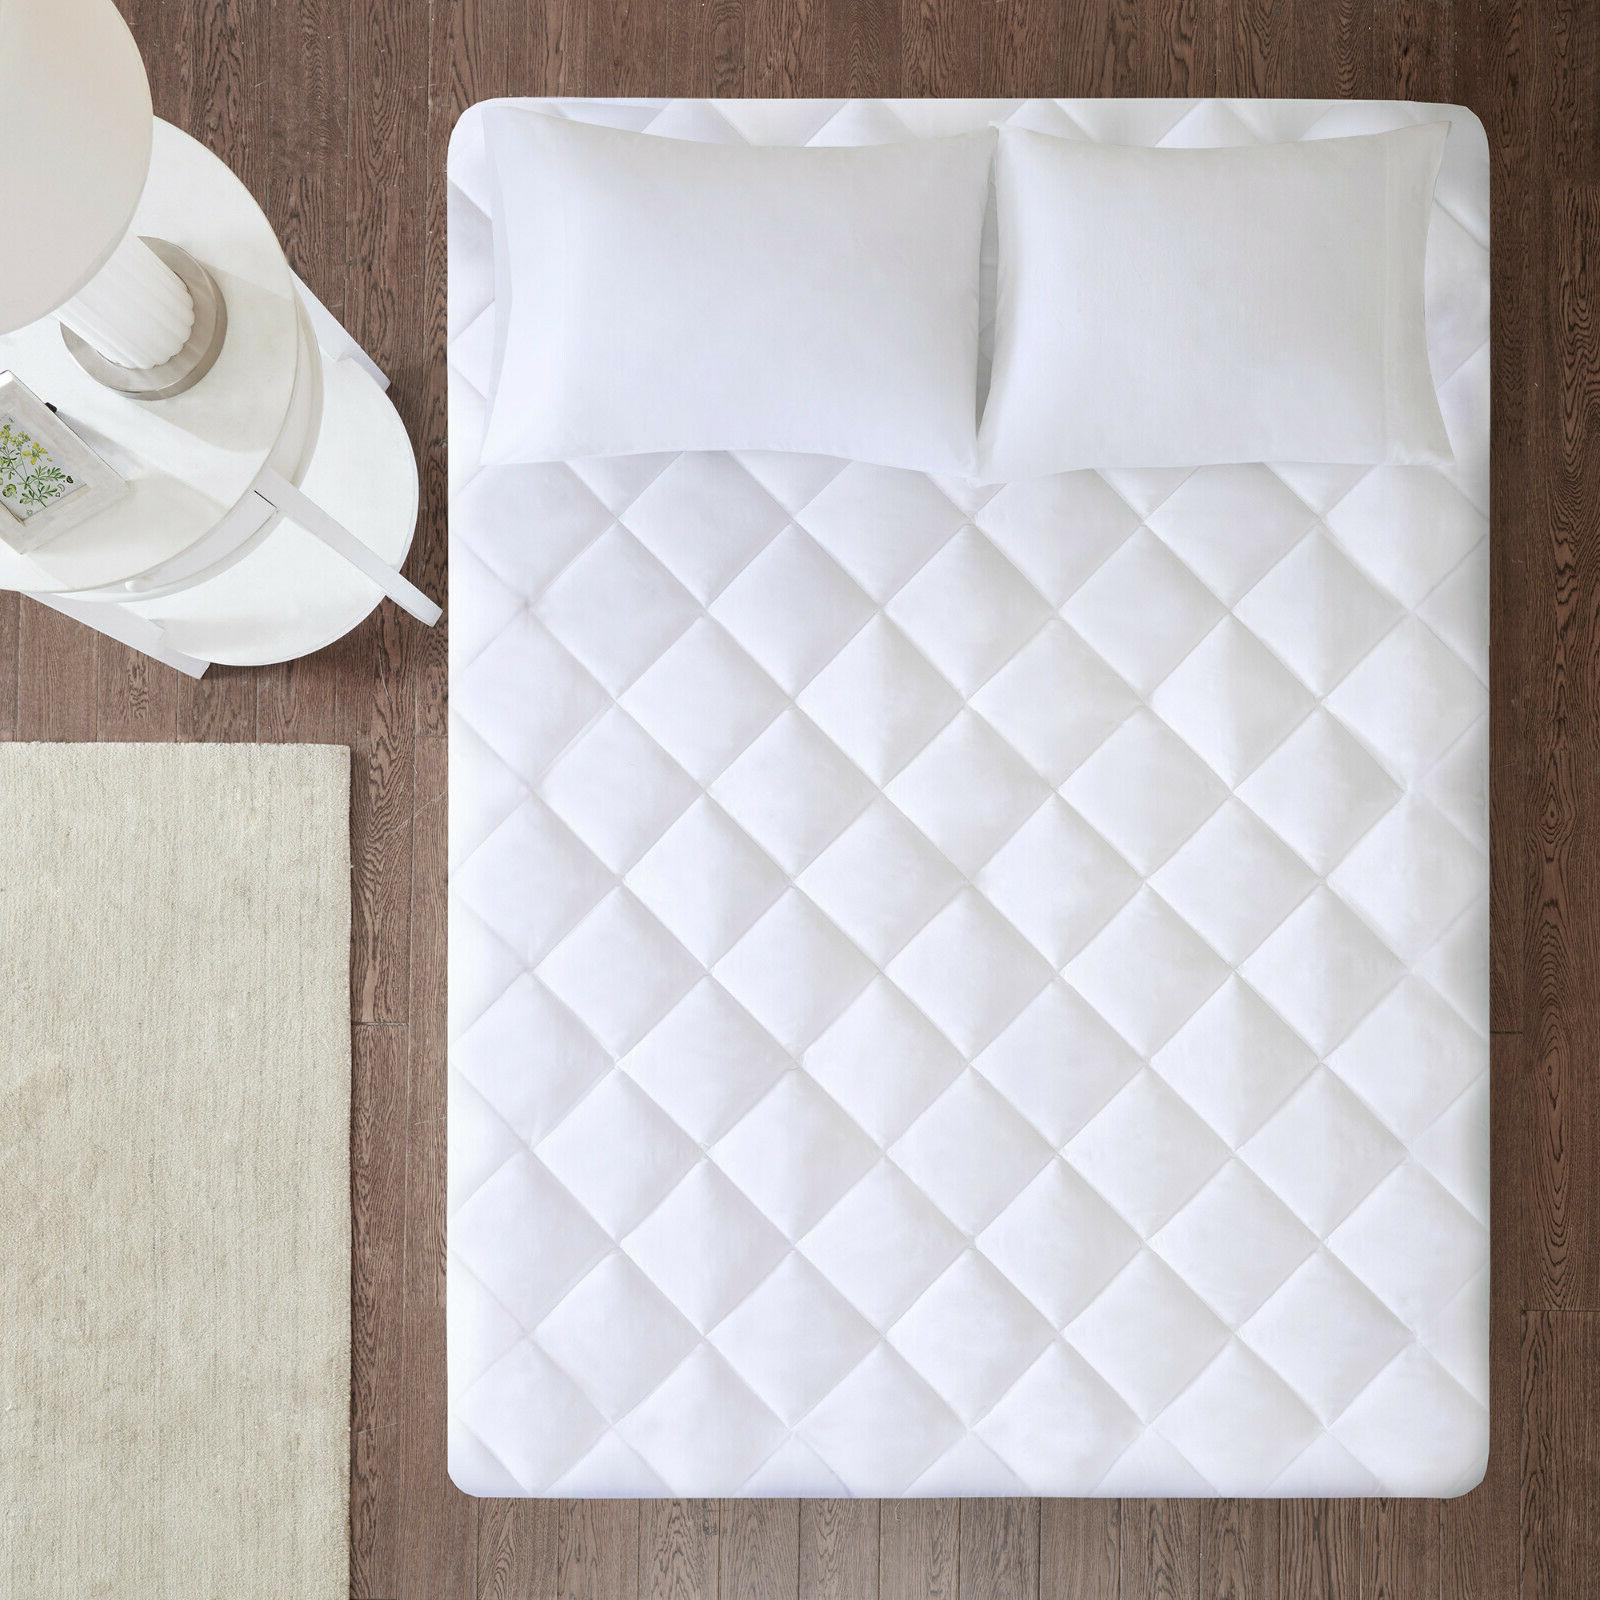 Mattress Pad Hypoallergenic Topper Cover